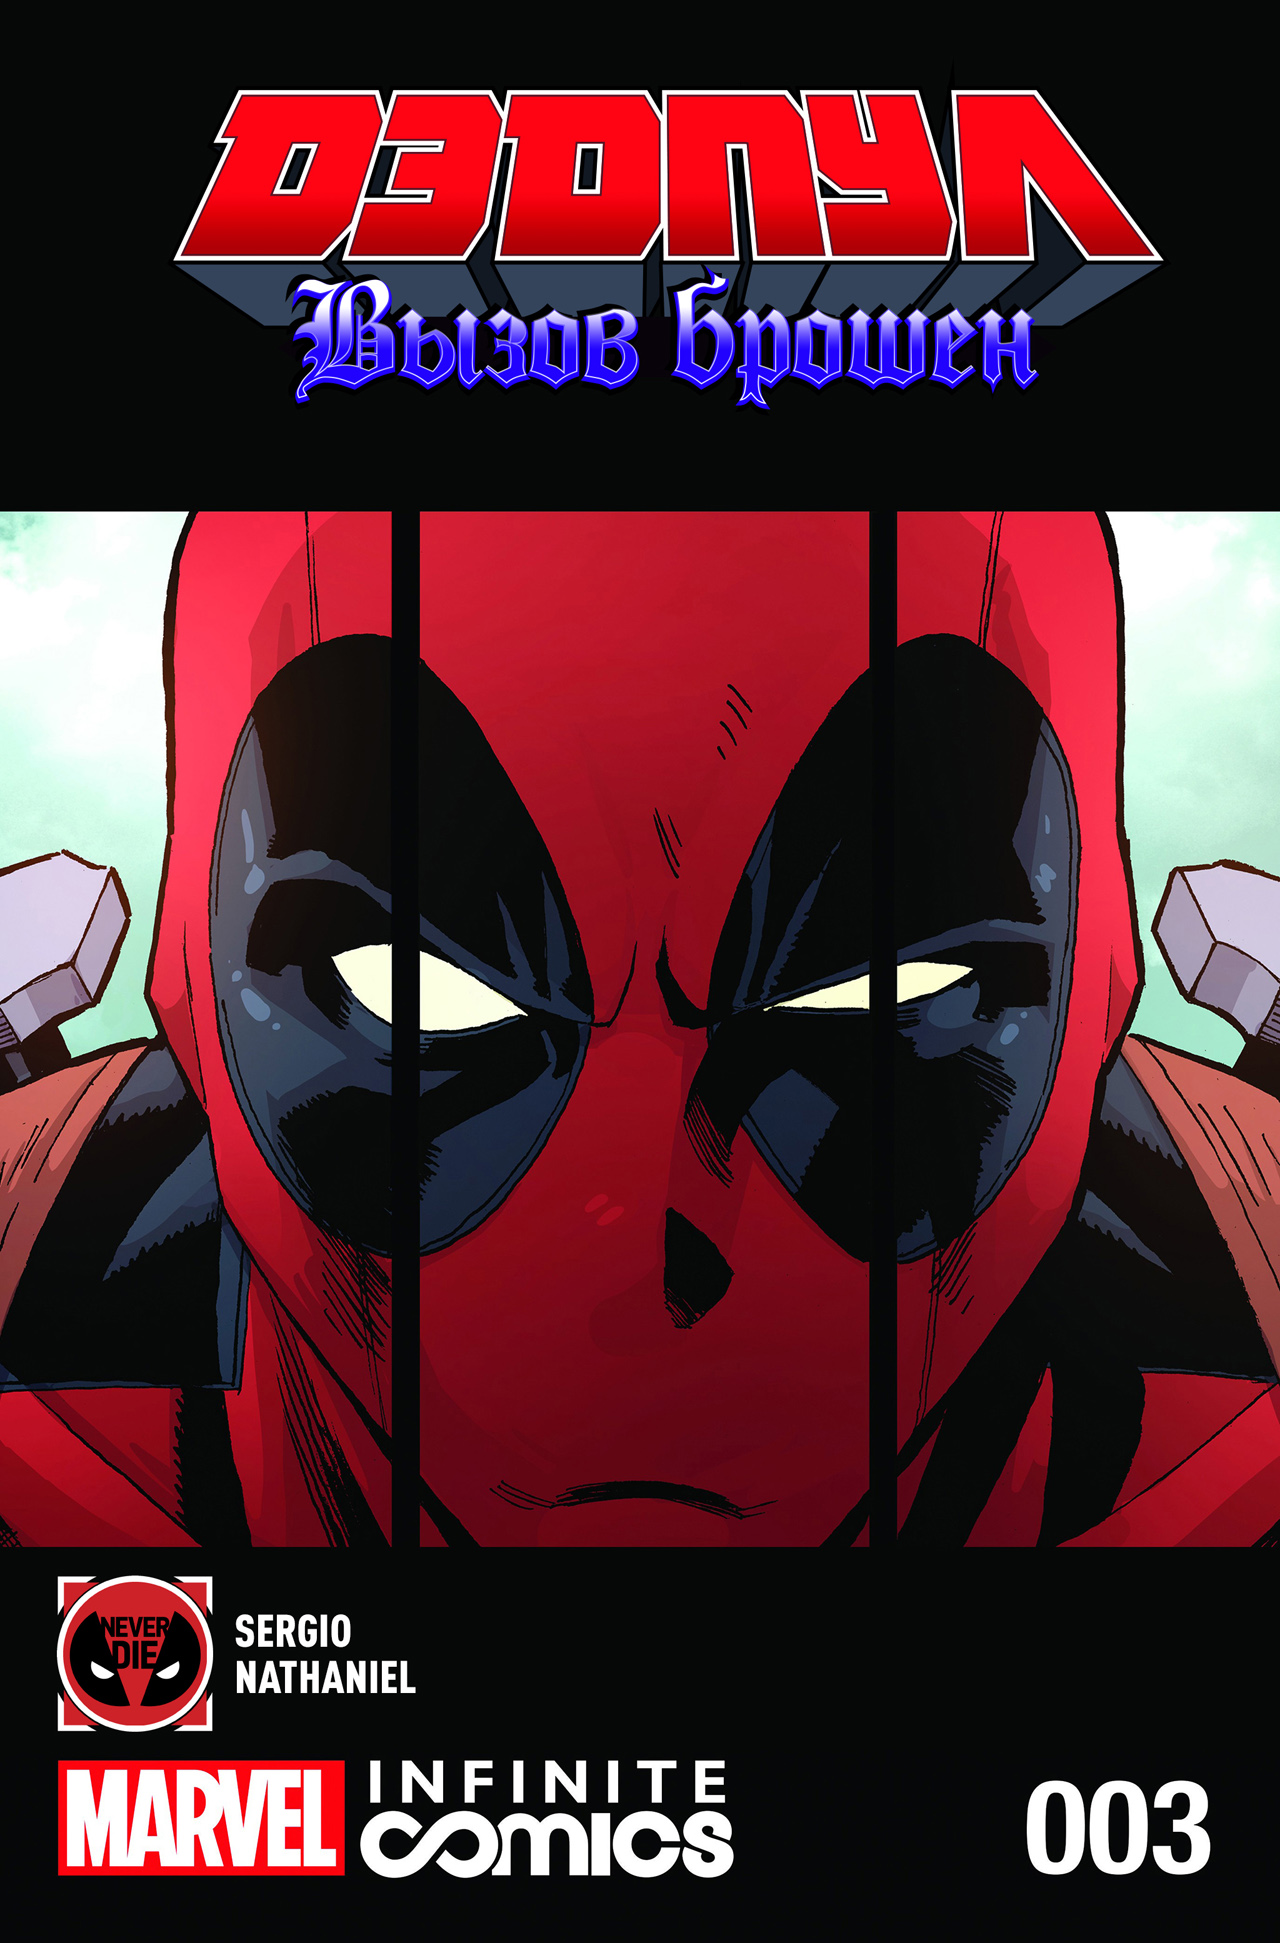 Deadpool: The Gauntlet #3